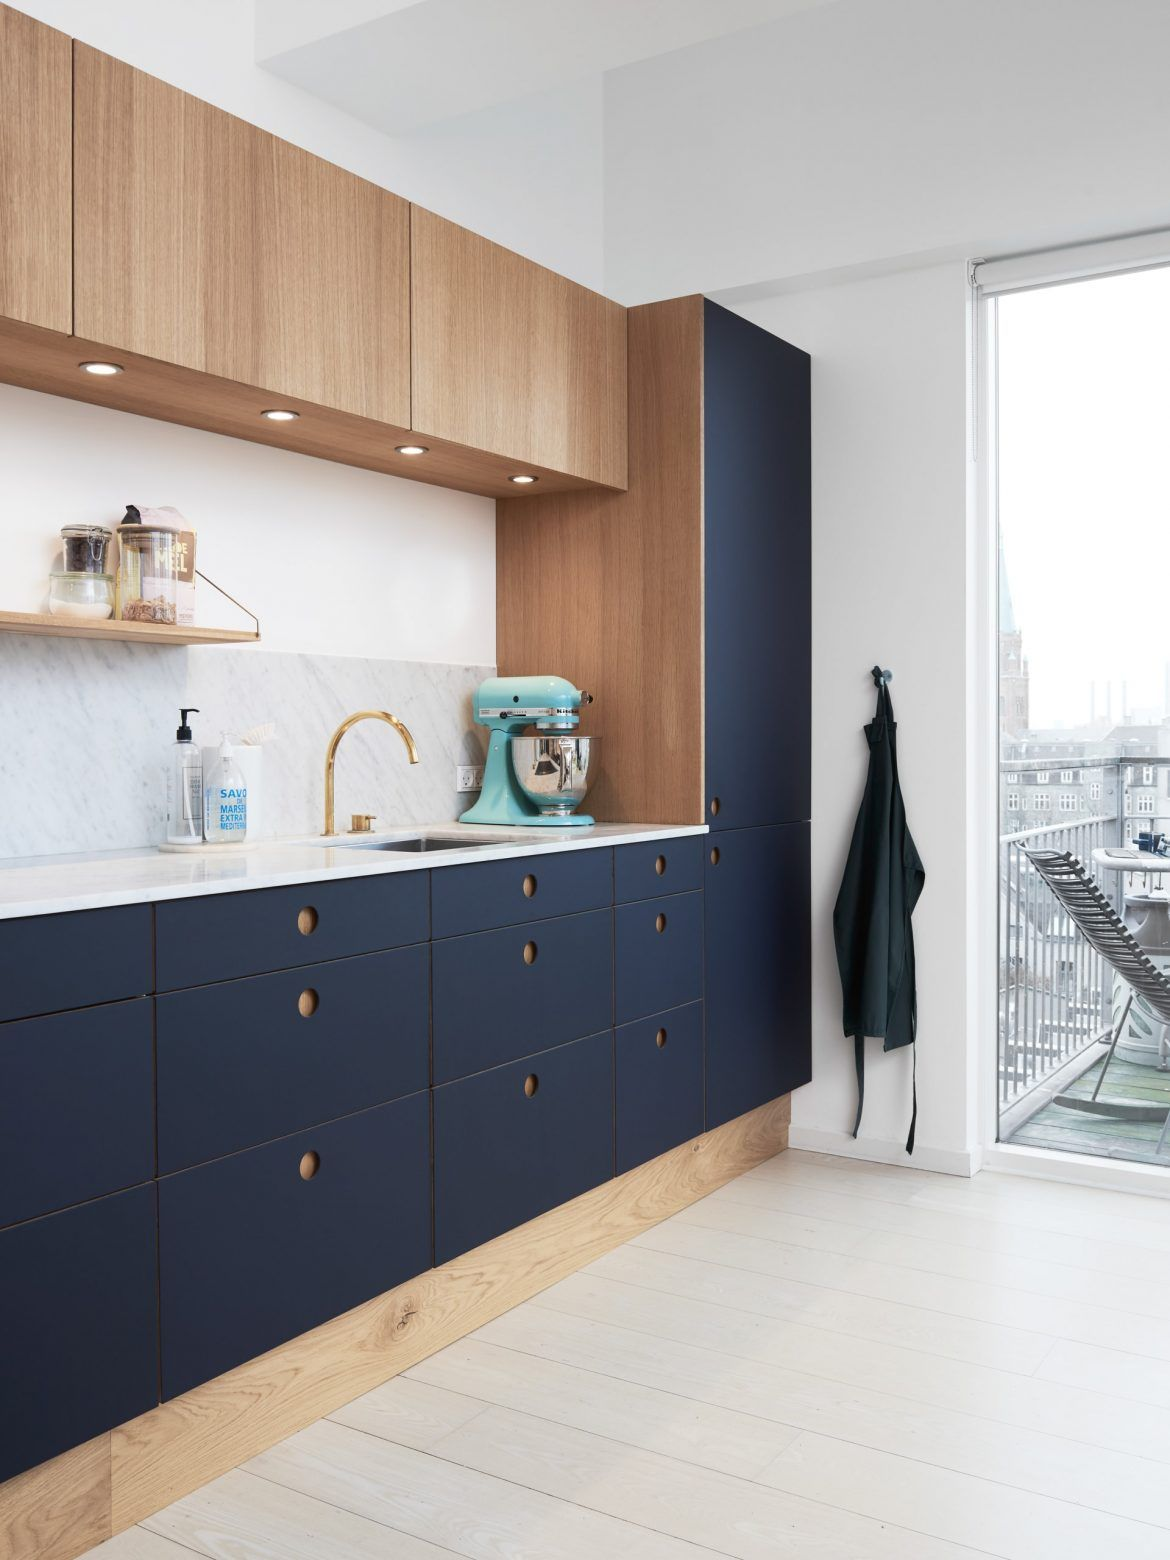 reform ou comment relooker une cuisine ikea cuisine navy and kitchens. Black Bedroom Furniture Sets. Home Design Ideas